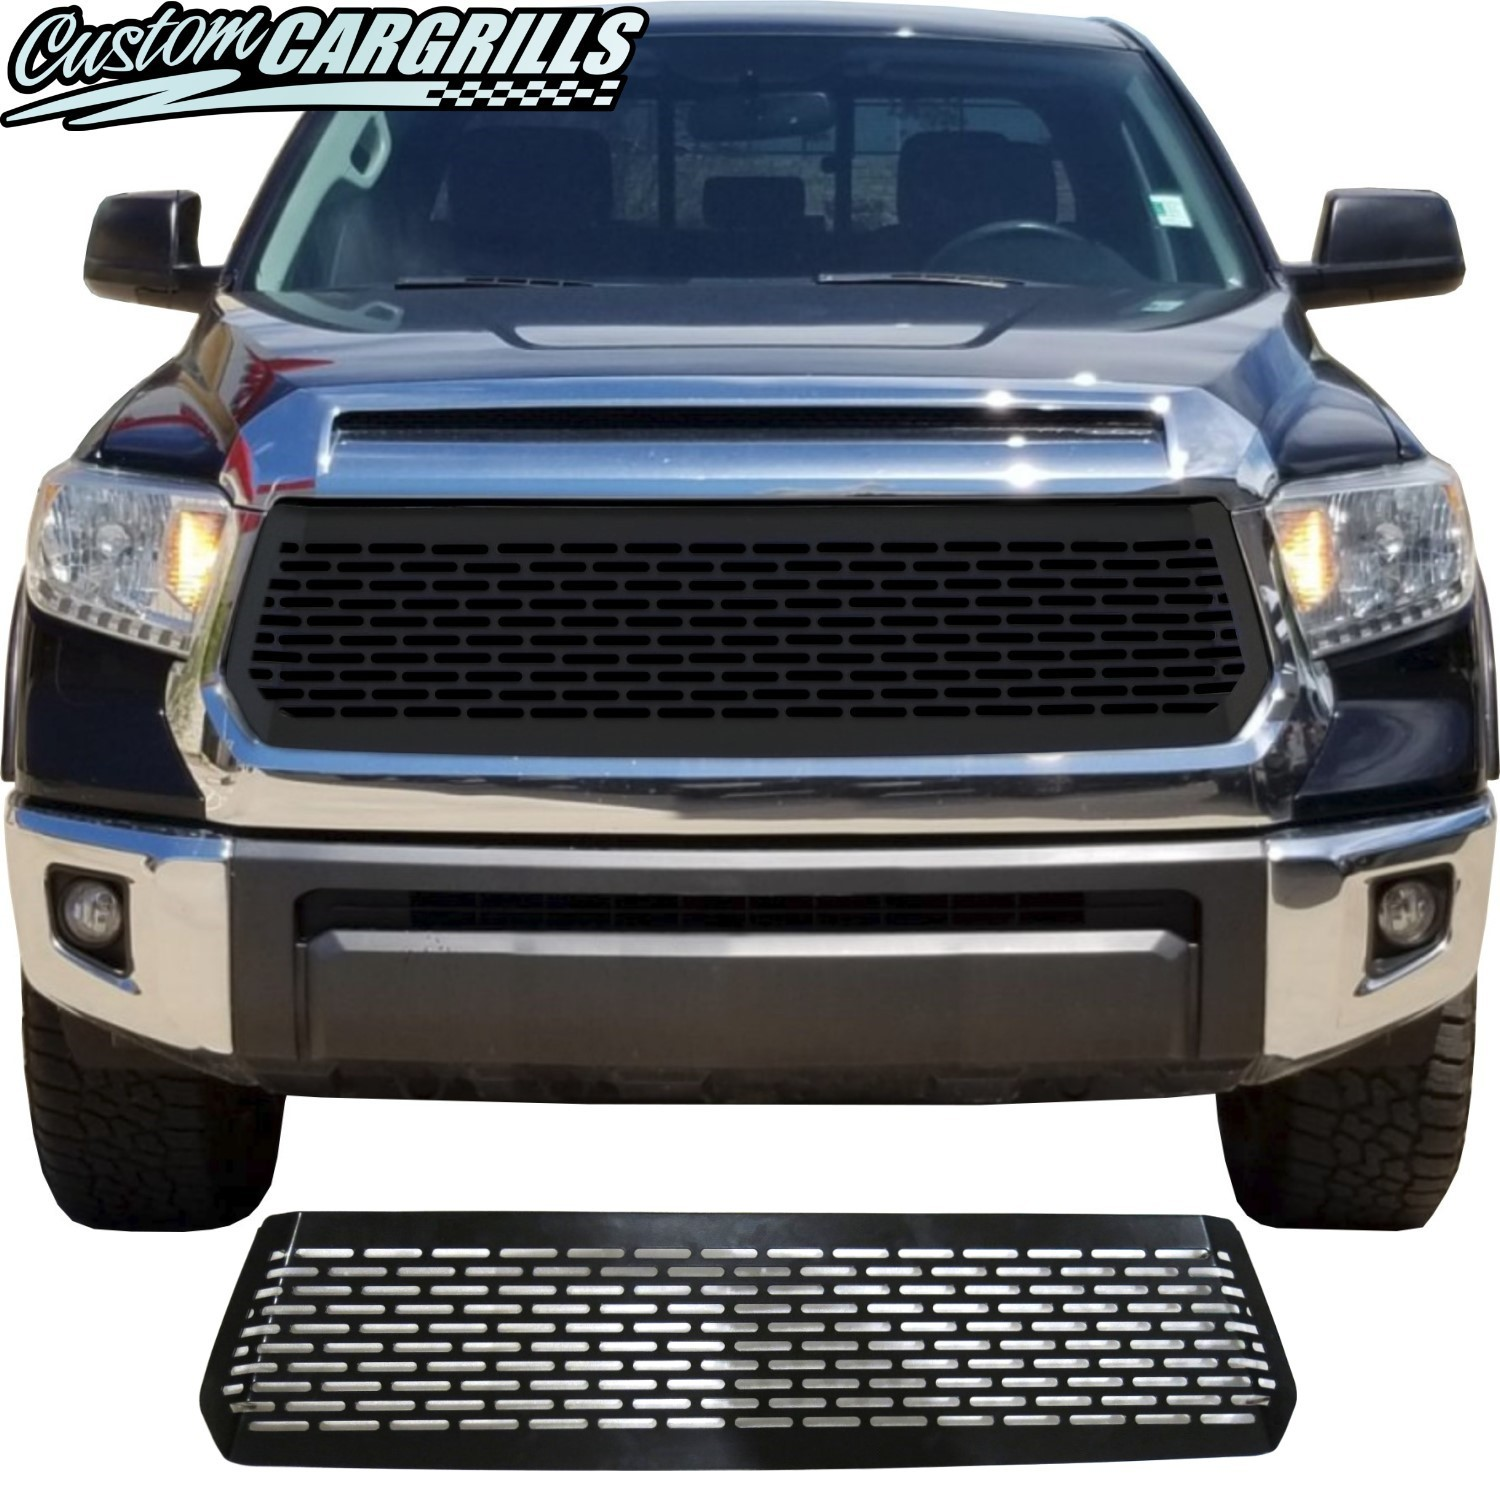 Heavy Duty Grill for 2014-17 Toyota Tundra